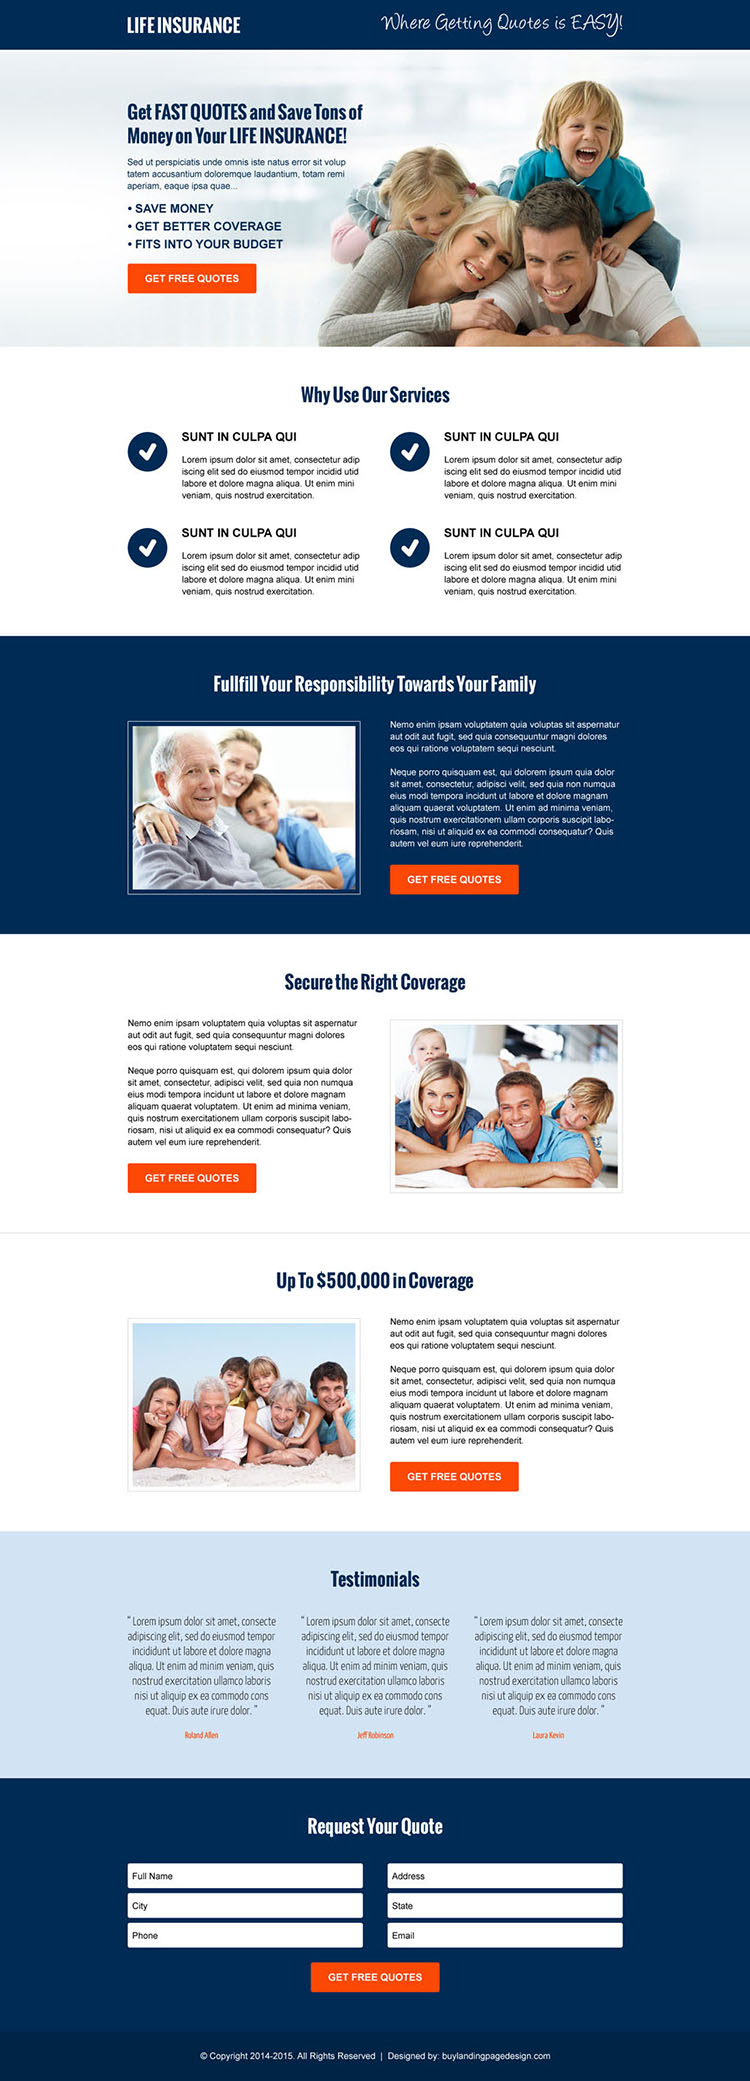 life insurance free quote cta and lead capture responsive landing page design